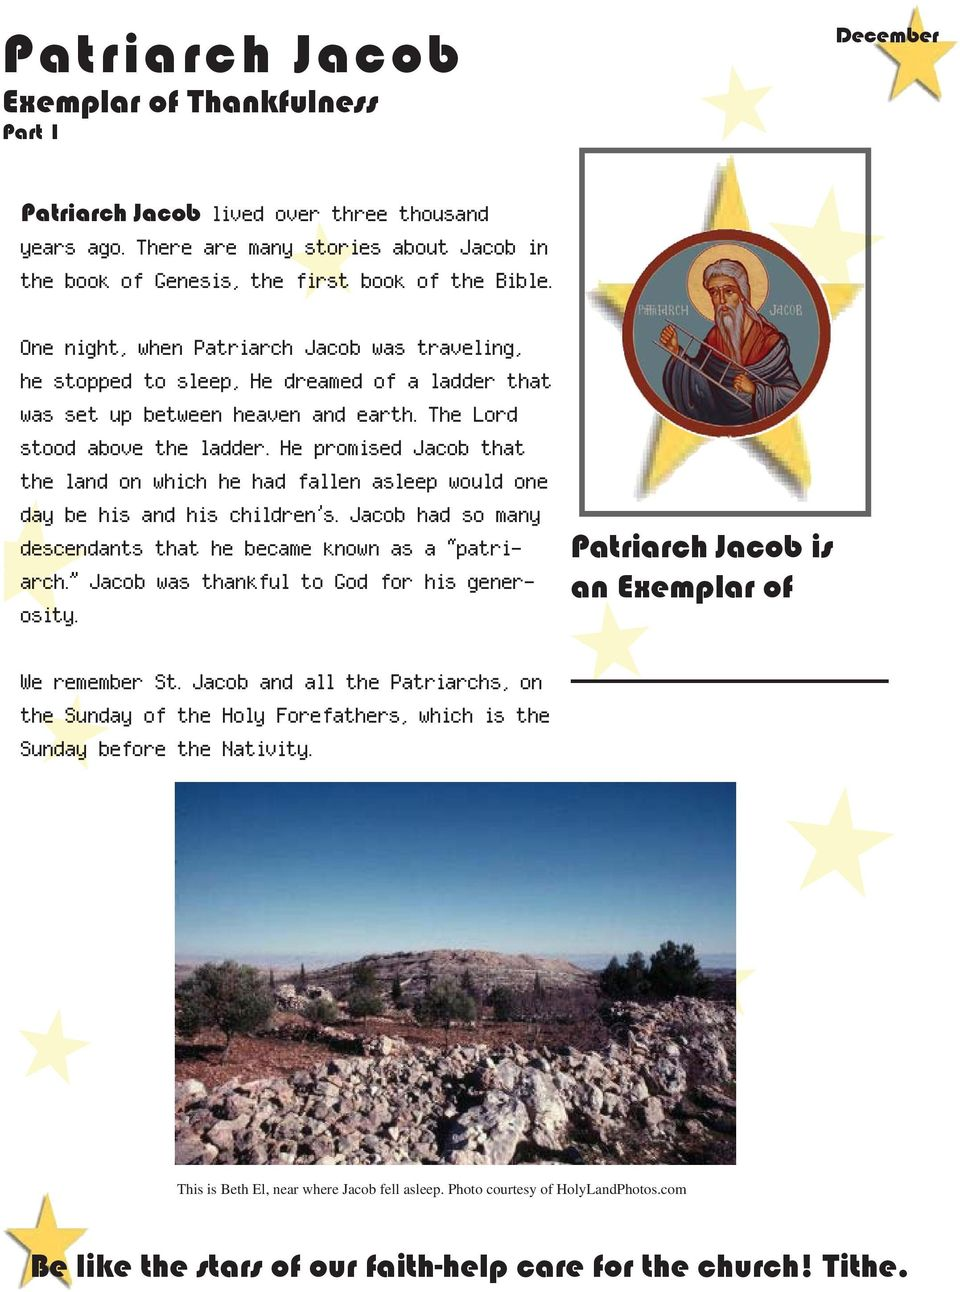 He promised Jacob that the land on which he had fallen asleep would one day be his and his children s. Jacob had so many descendants that he became known as a patriarch.